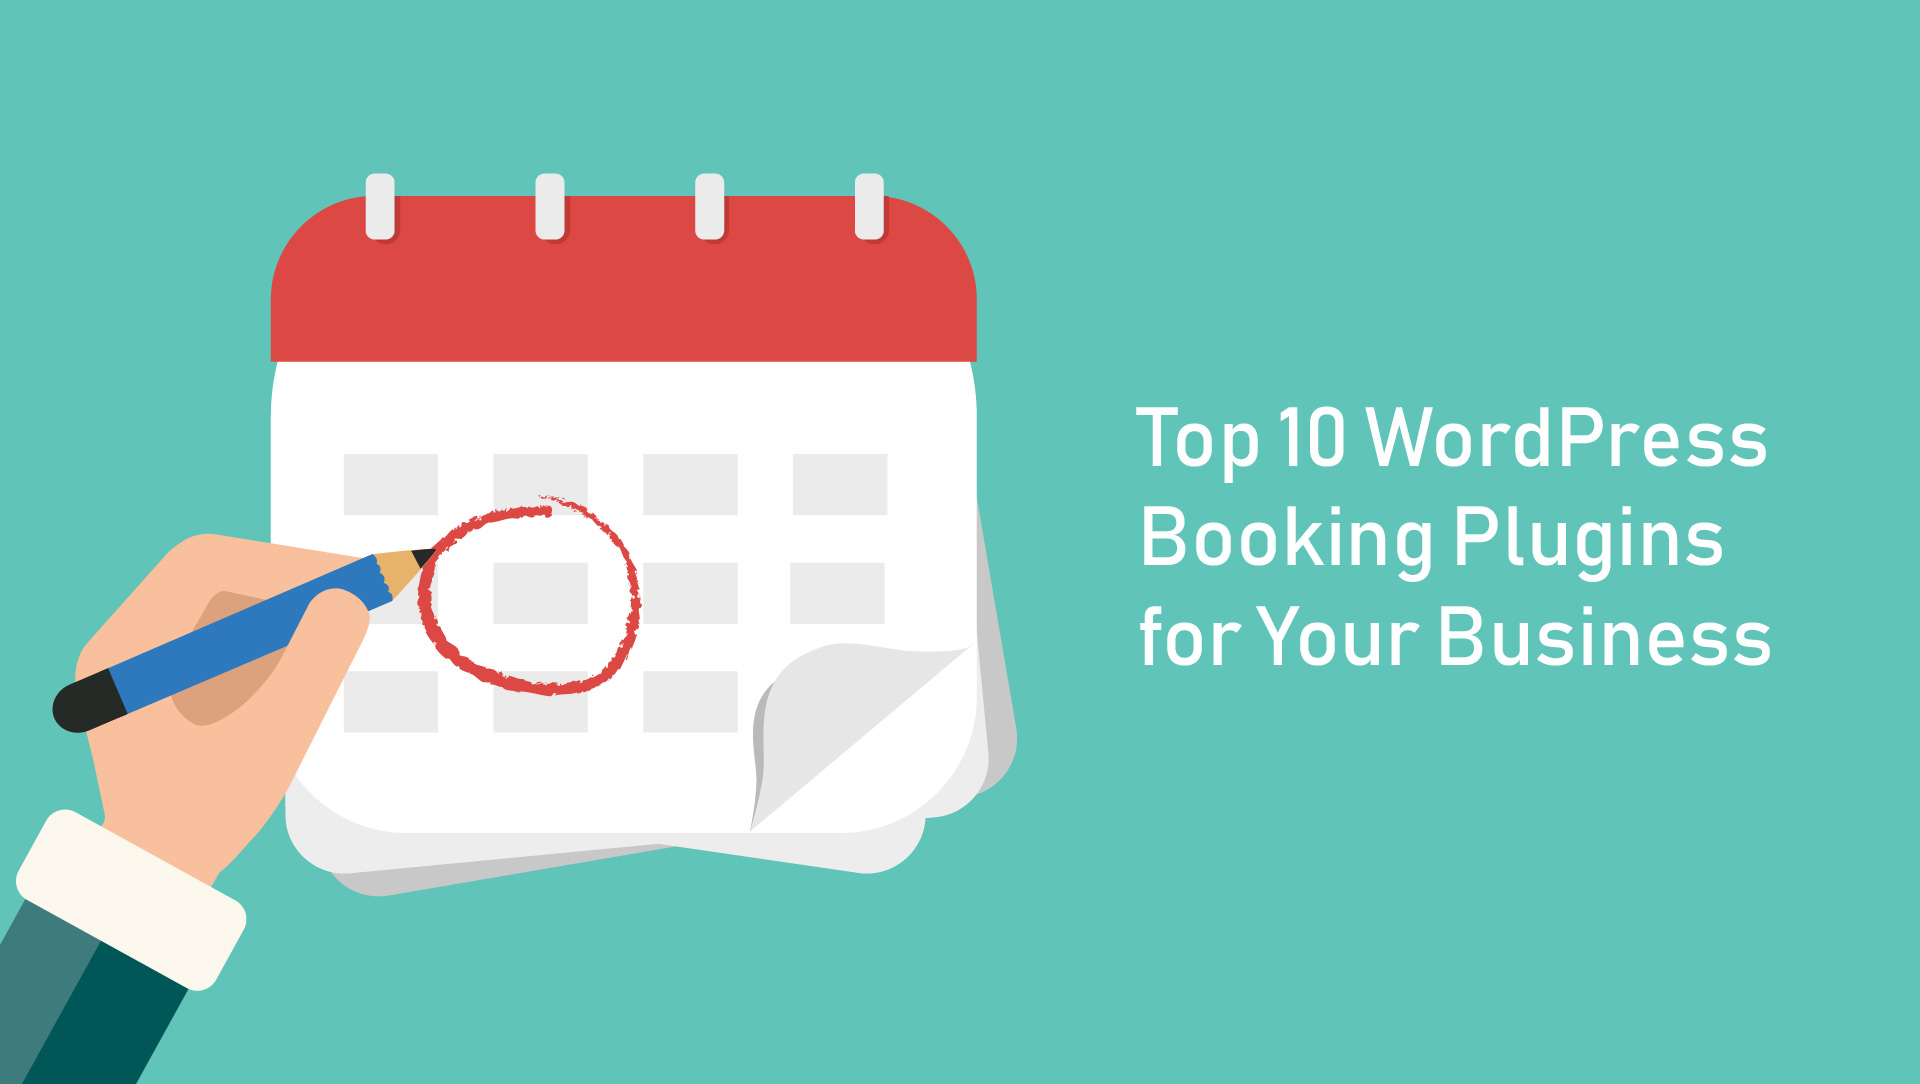 Top 10 WordPress Booking Plugins to Streamline Your Business